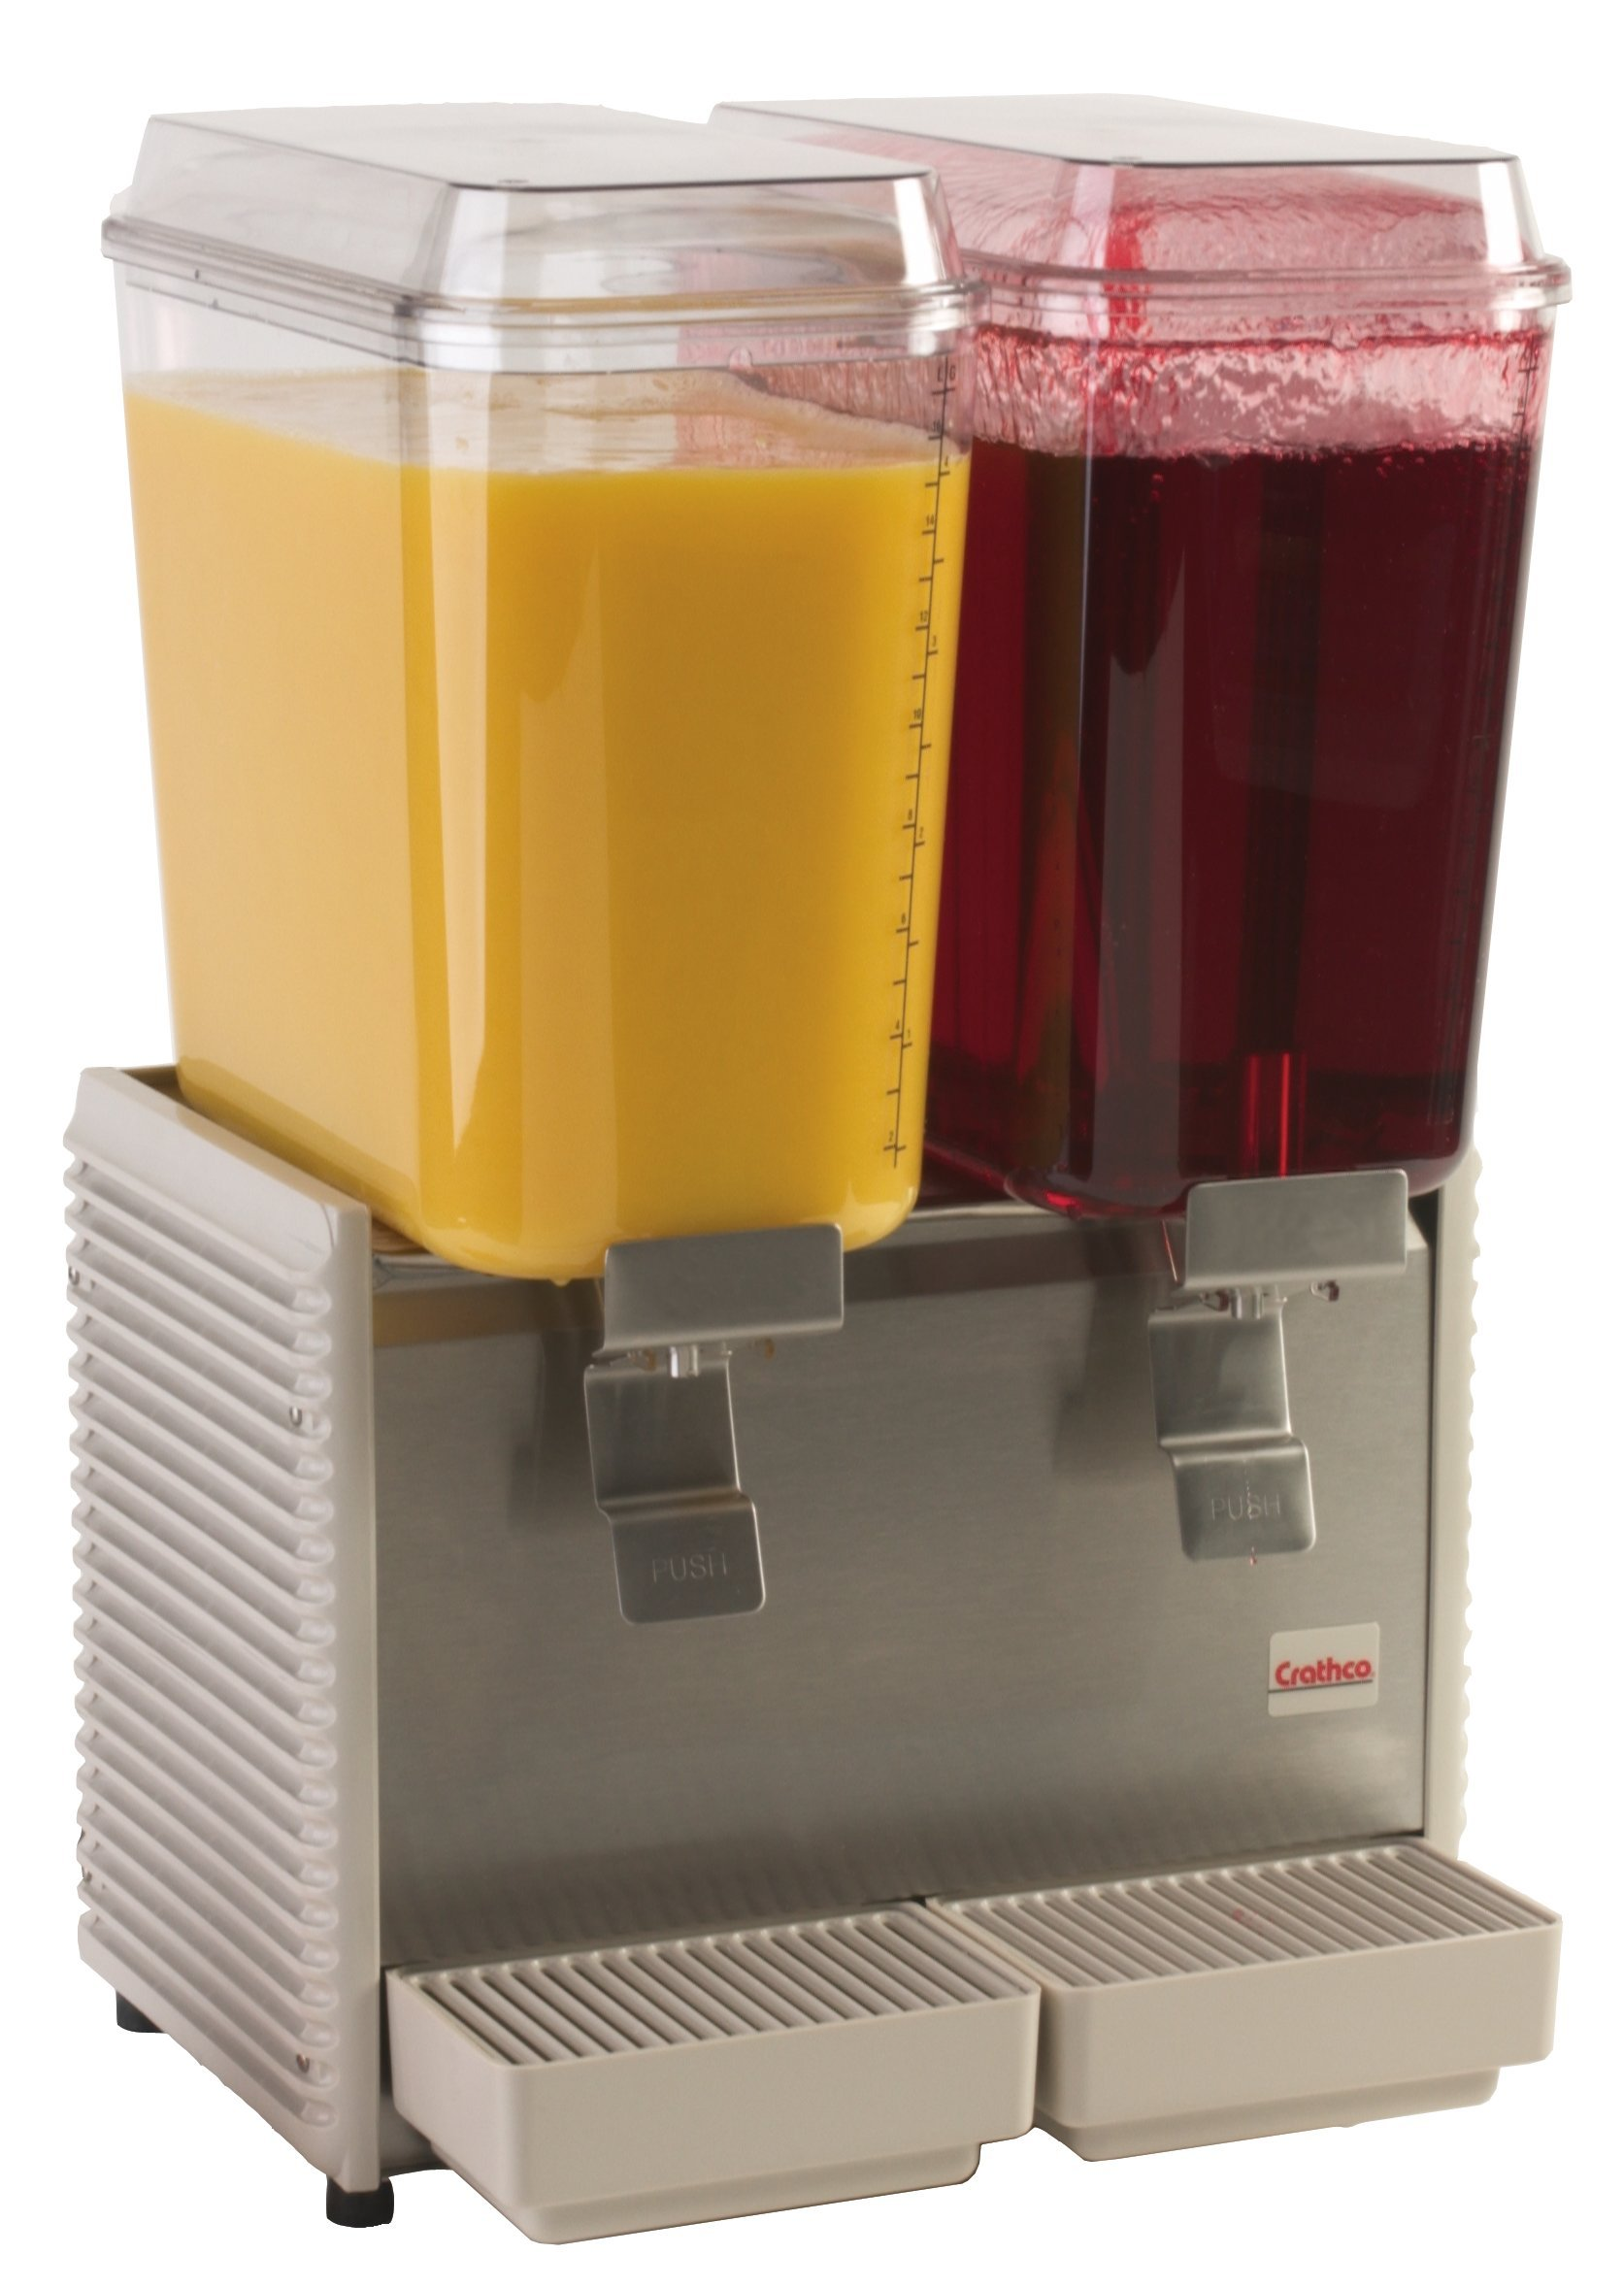 Grindmaster-Cecilware D25-4 Crathco Classic Bubblers Premix Cold Beverage Dispensers, 5-Gallon, Plastic/Stainless Steel Finish